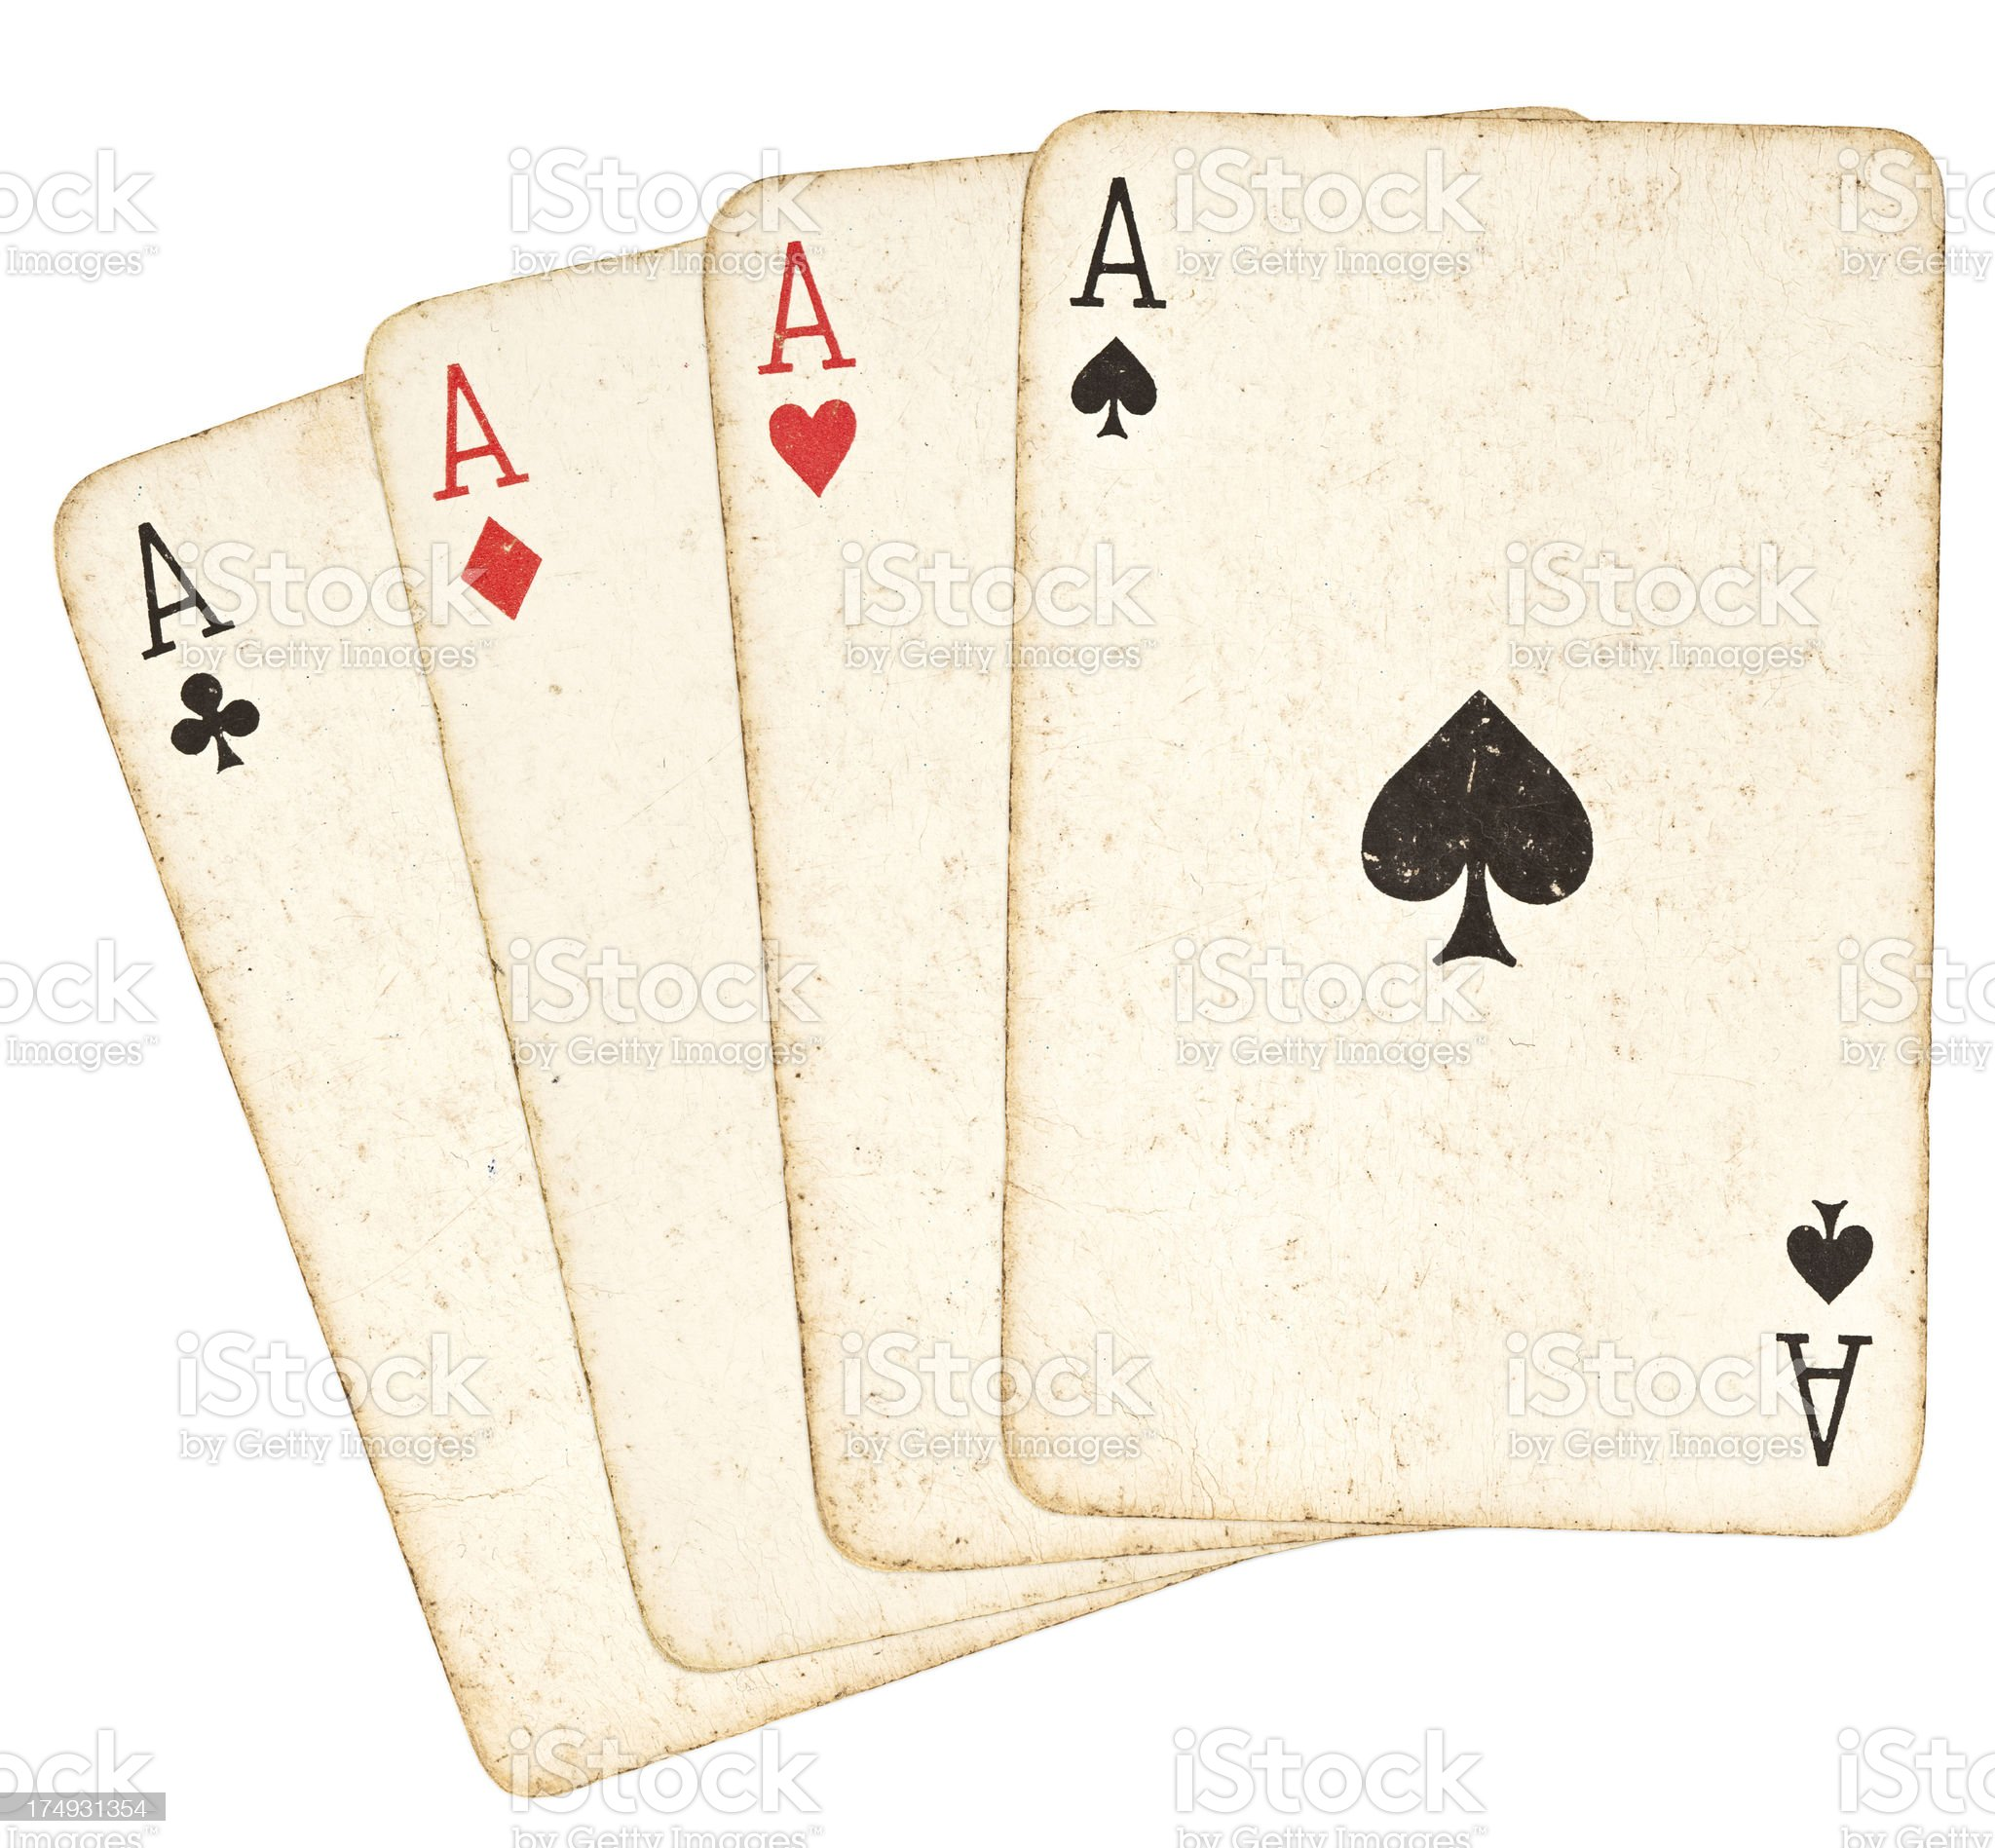 Old Playing Cards - Set of Aces royalty-free stock photo